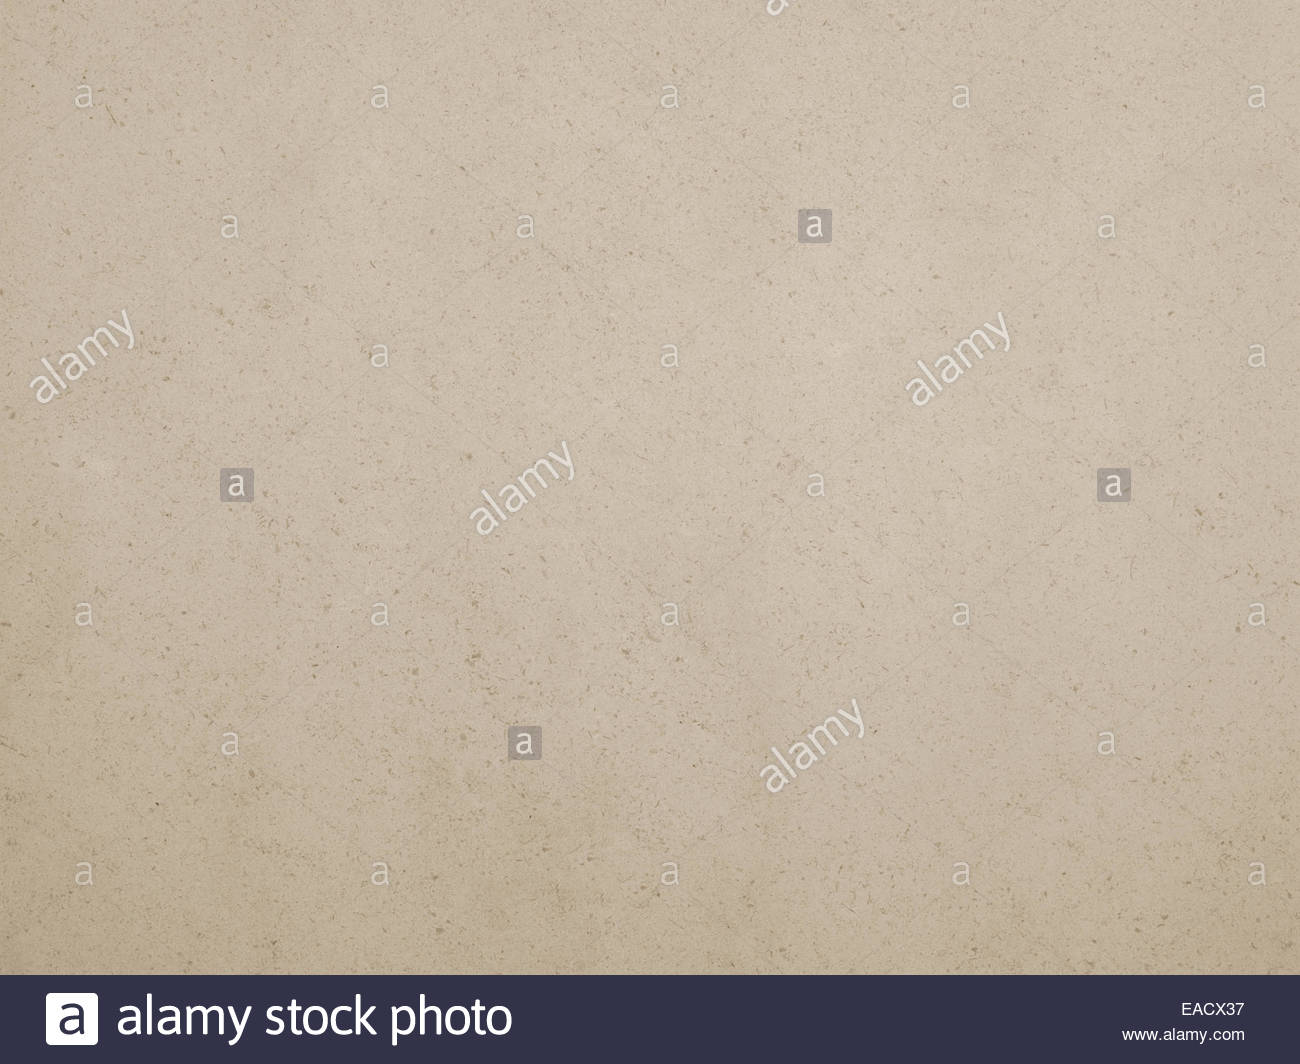 sandstone background detail nobody Stock Photo 75271931   Alamy 1300x1064